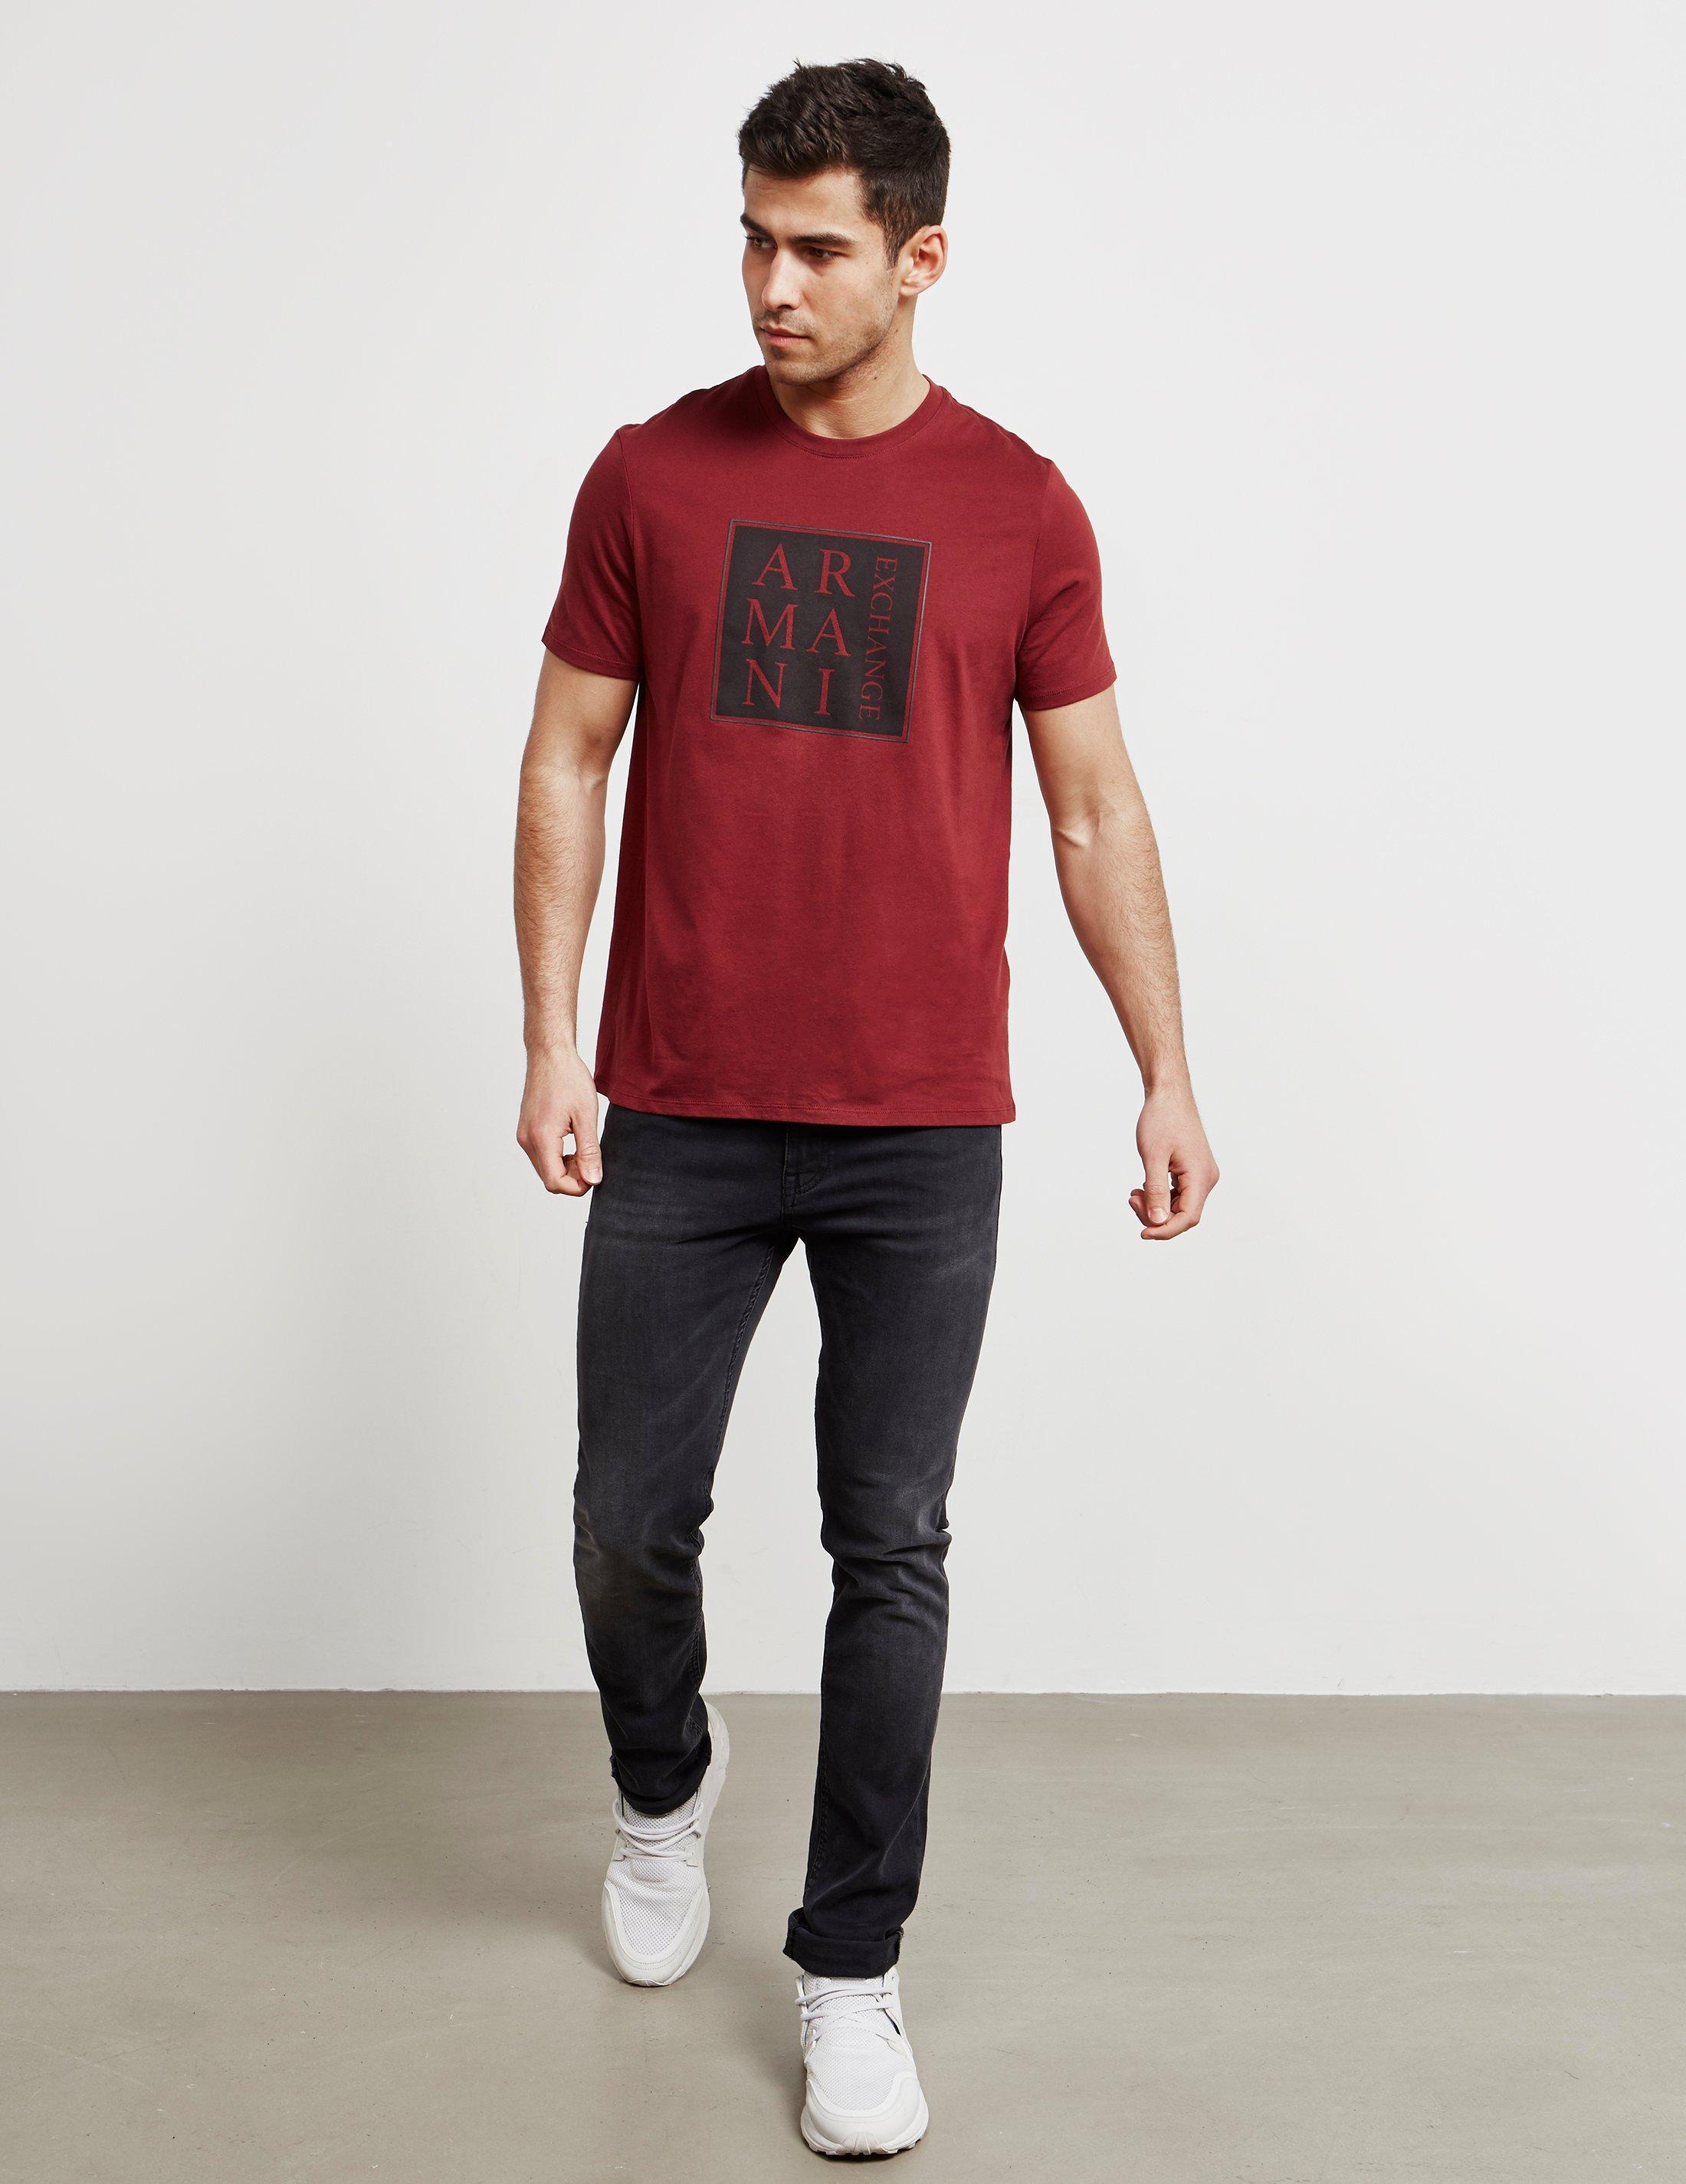 8c2cbf1a73 Lyst - Armani Exchange Mens Square Box Short Sleeve T-shirt Red in Red for  Men